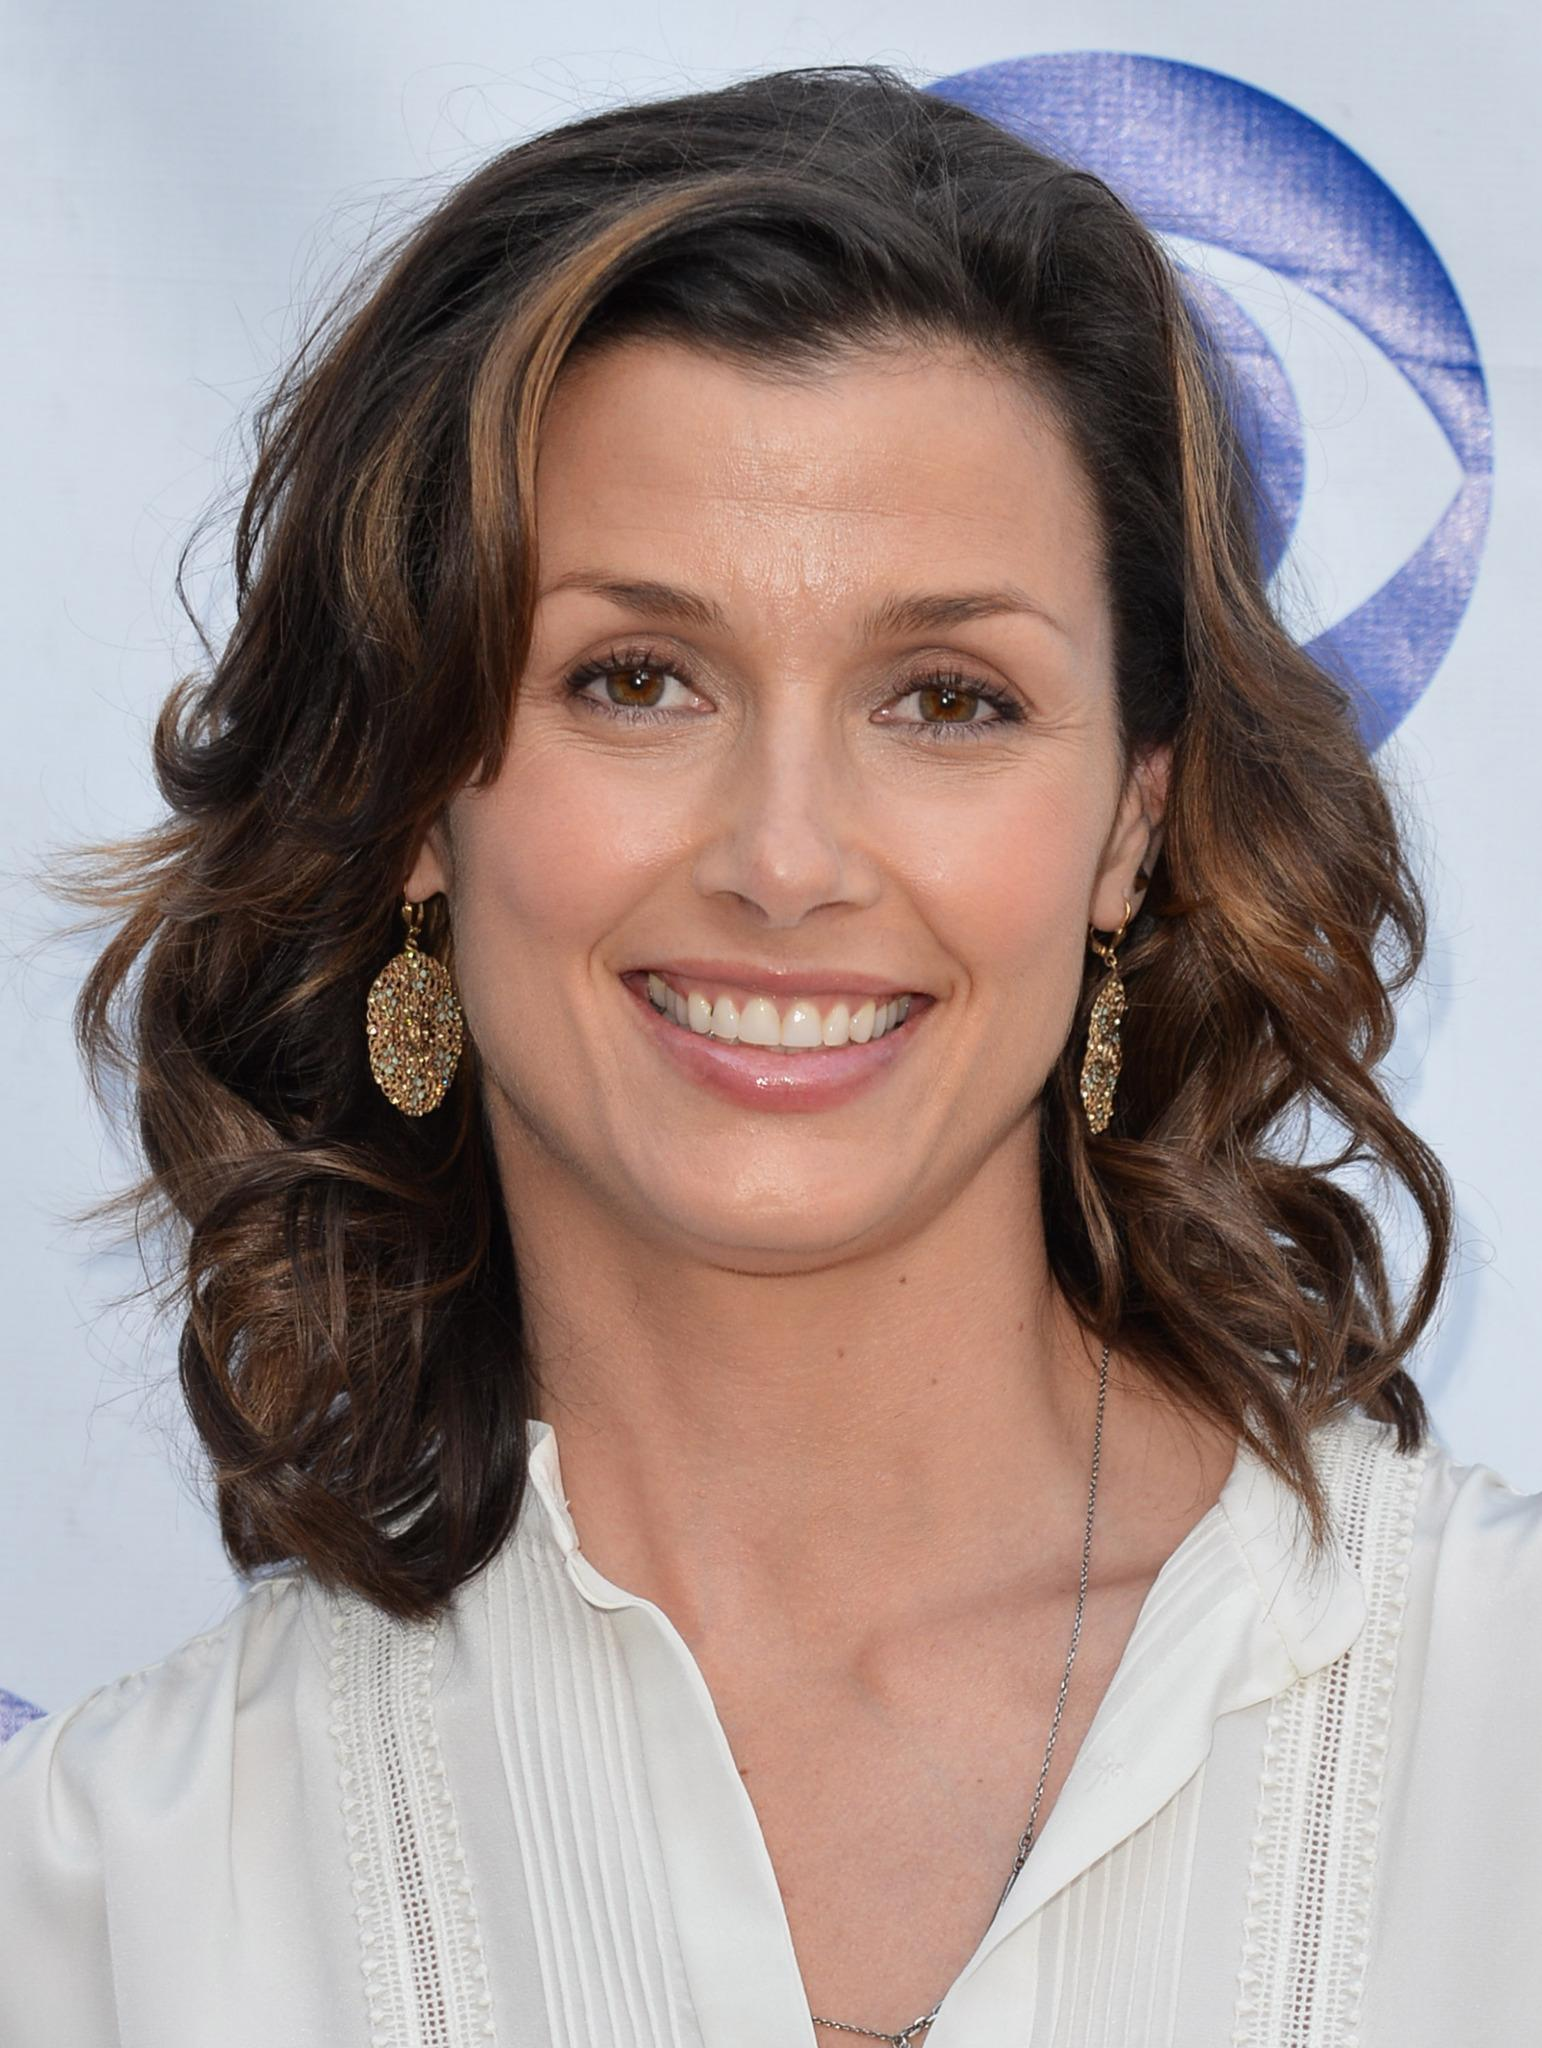 u0026#39;Blue Bloodsu0026#39; Actress Bridget Moynahan Shares Photos From Her Wedding Day. u0026quot;